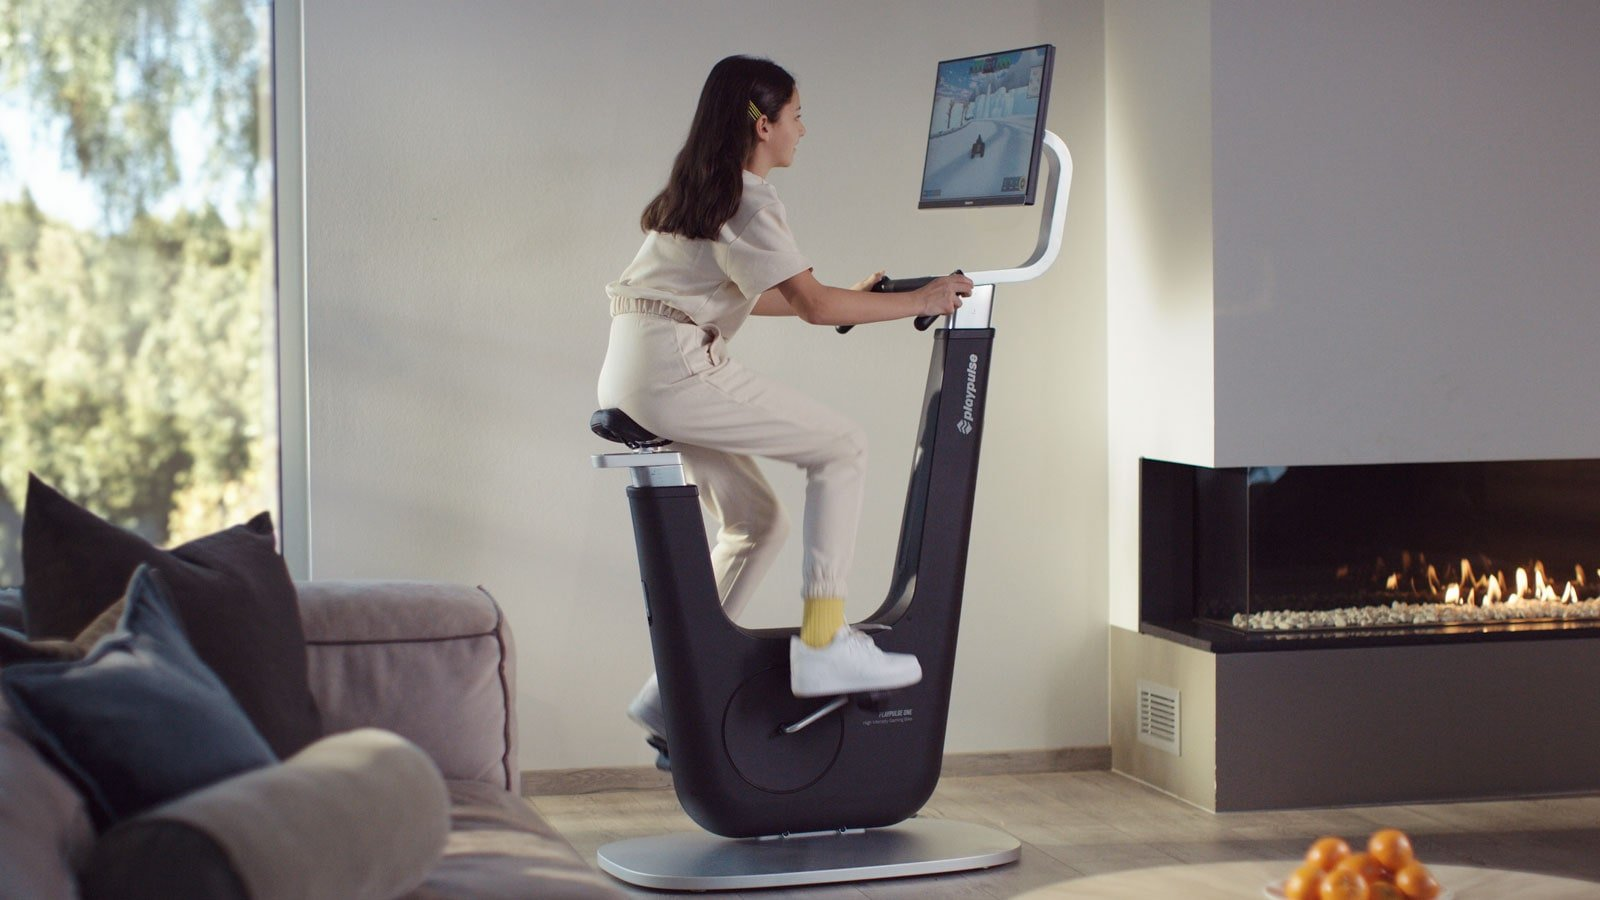 Playpulse ONE indoor gaming bike lets you control your games with the pedal sensors